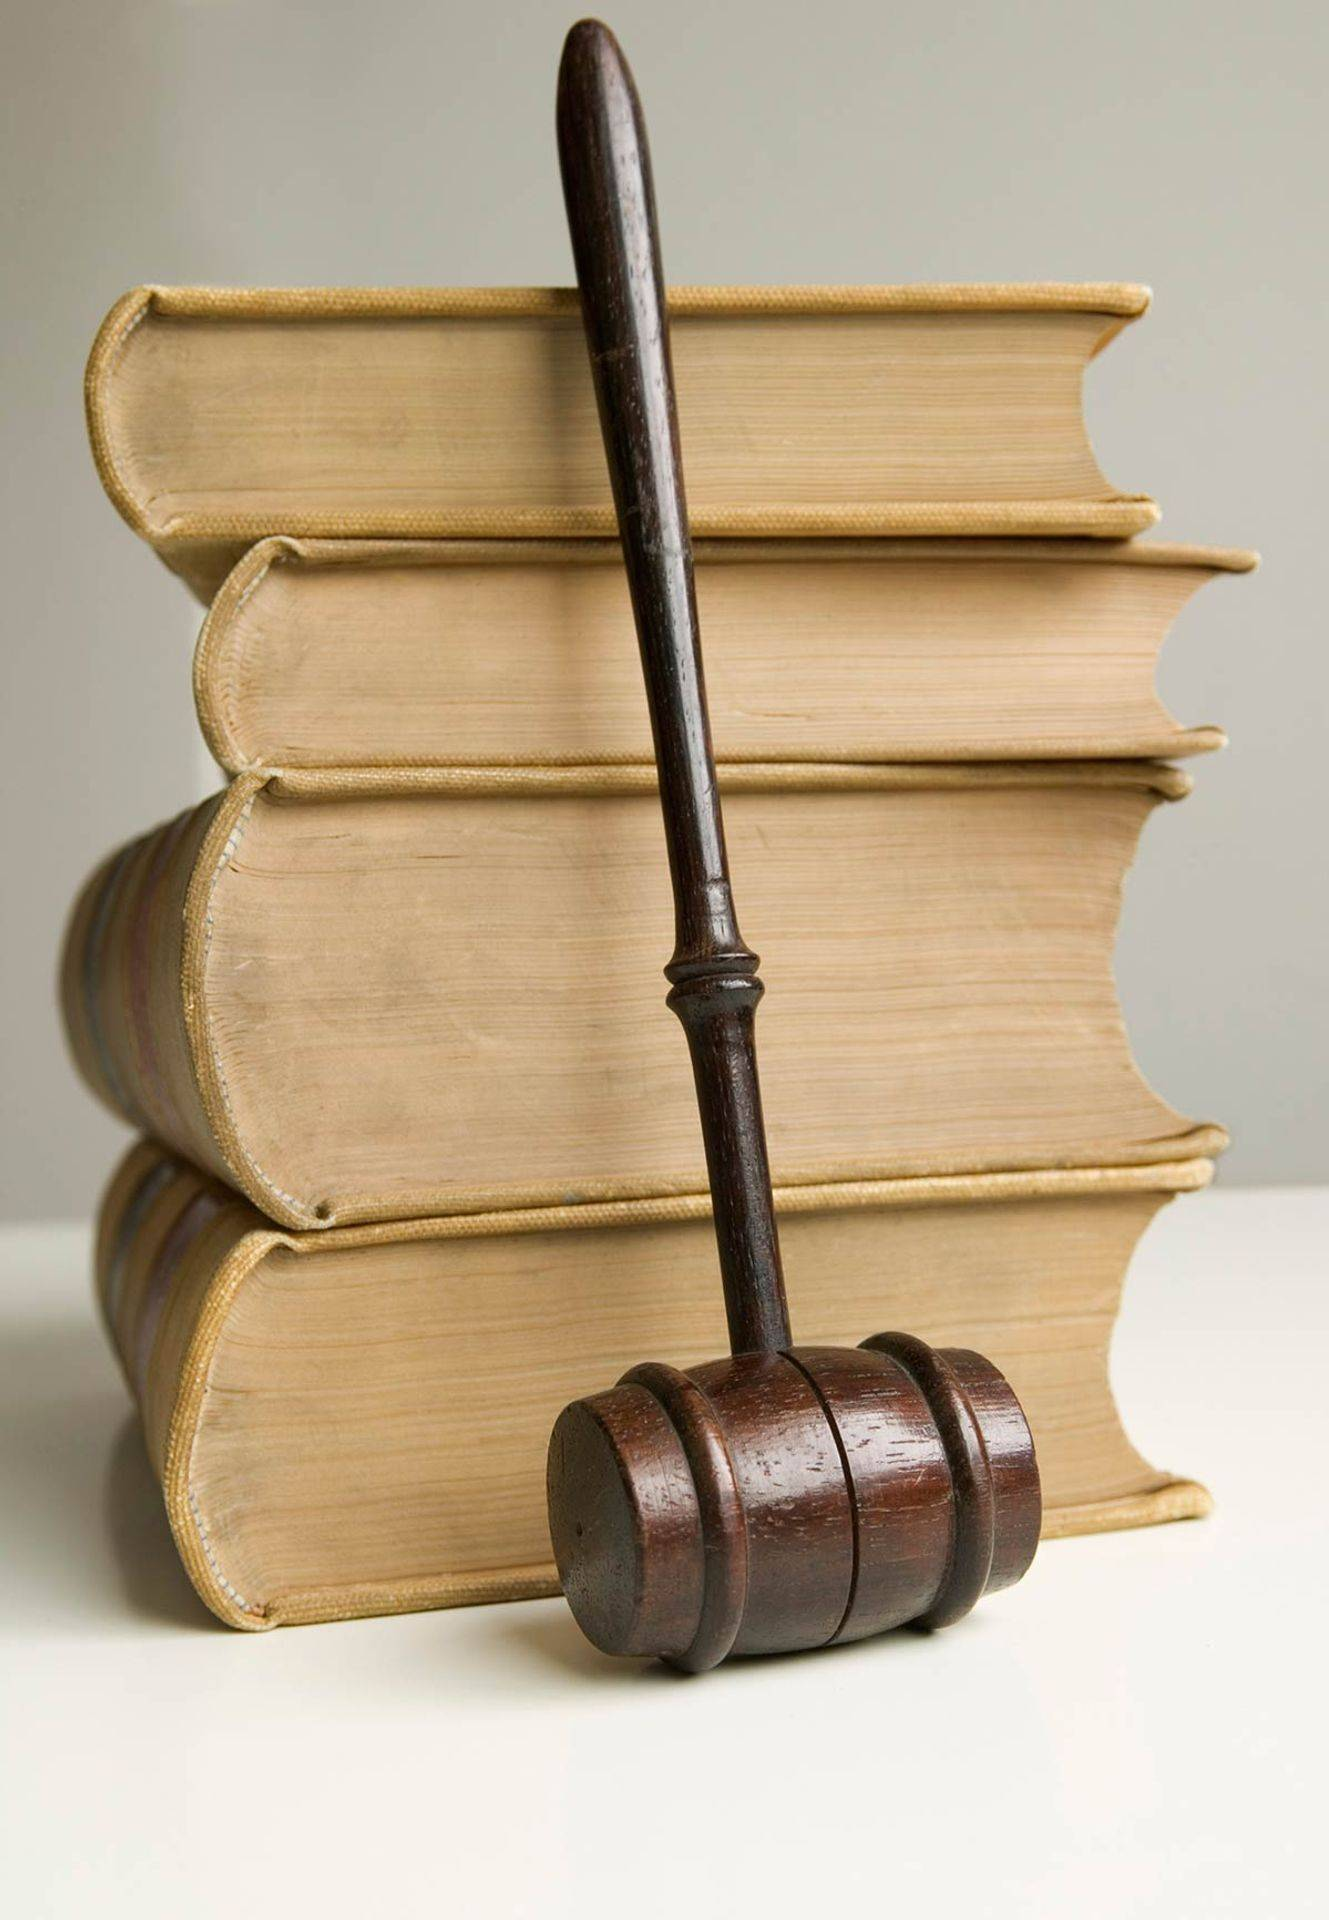 Legal books and judges gavel